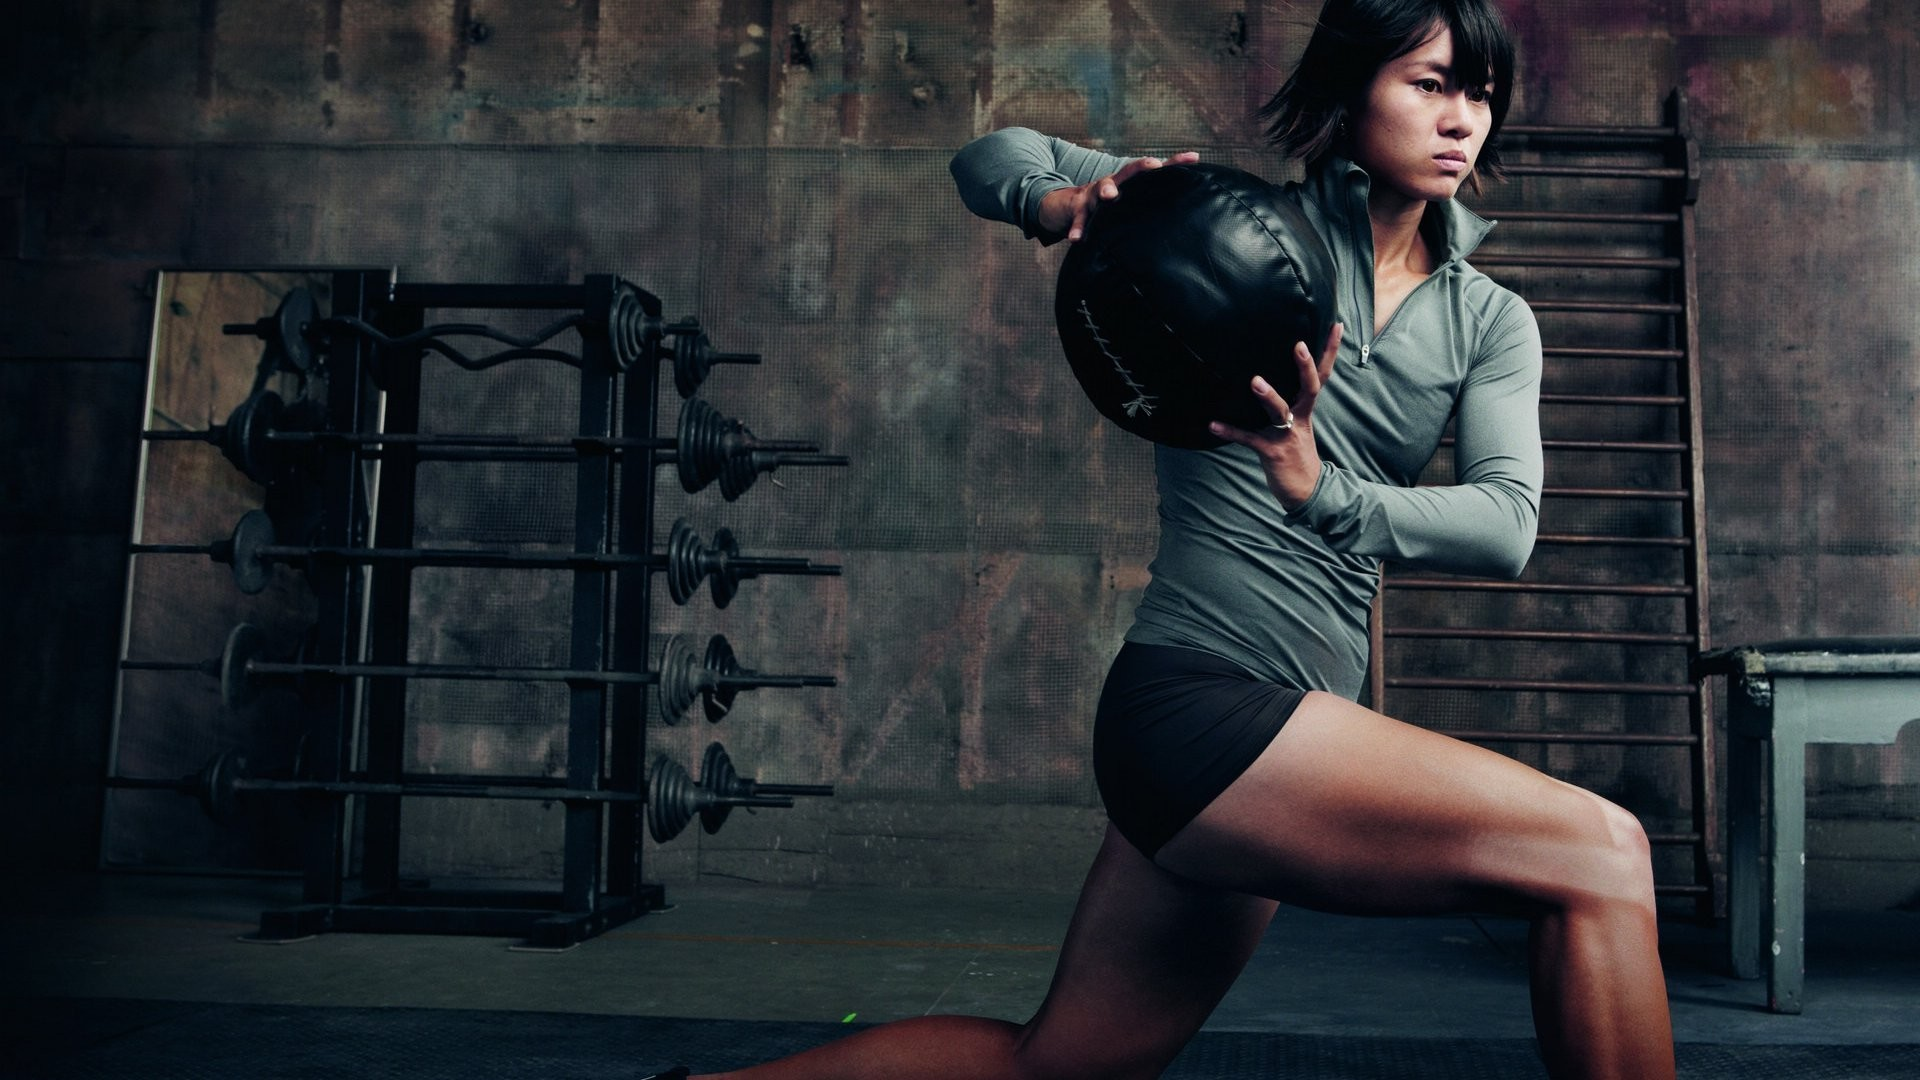 Hd workout wallpaper 74 images - Fitness wallpapers for desktop ...